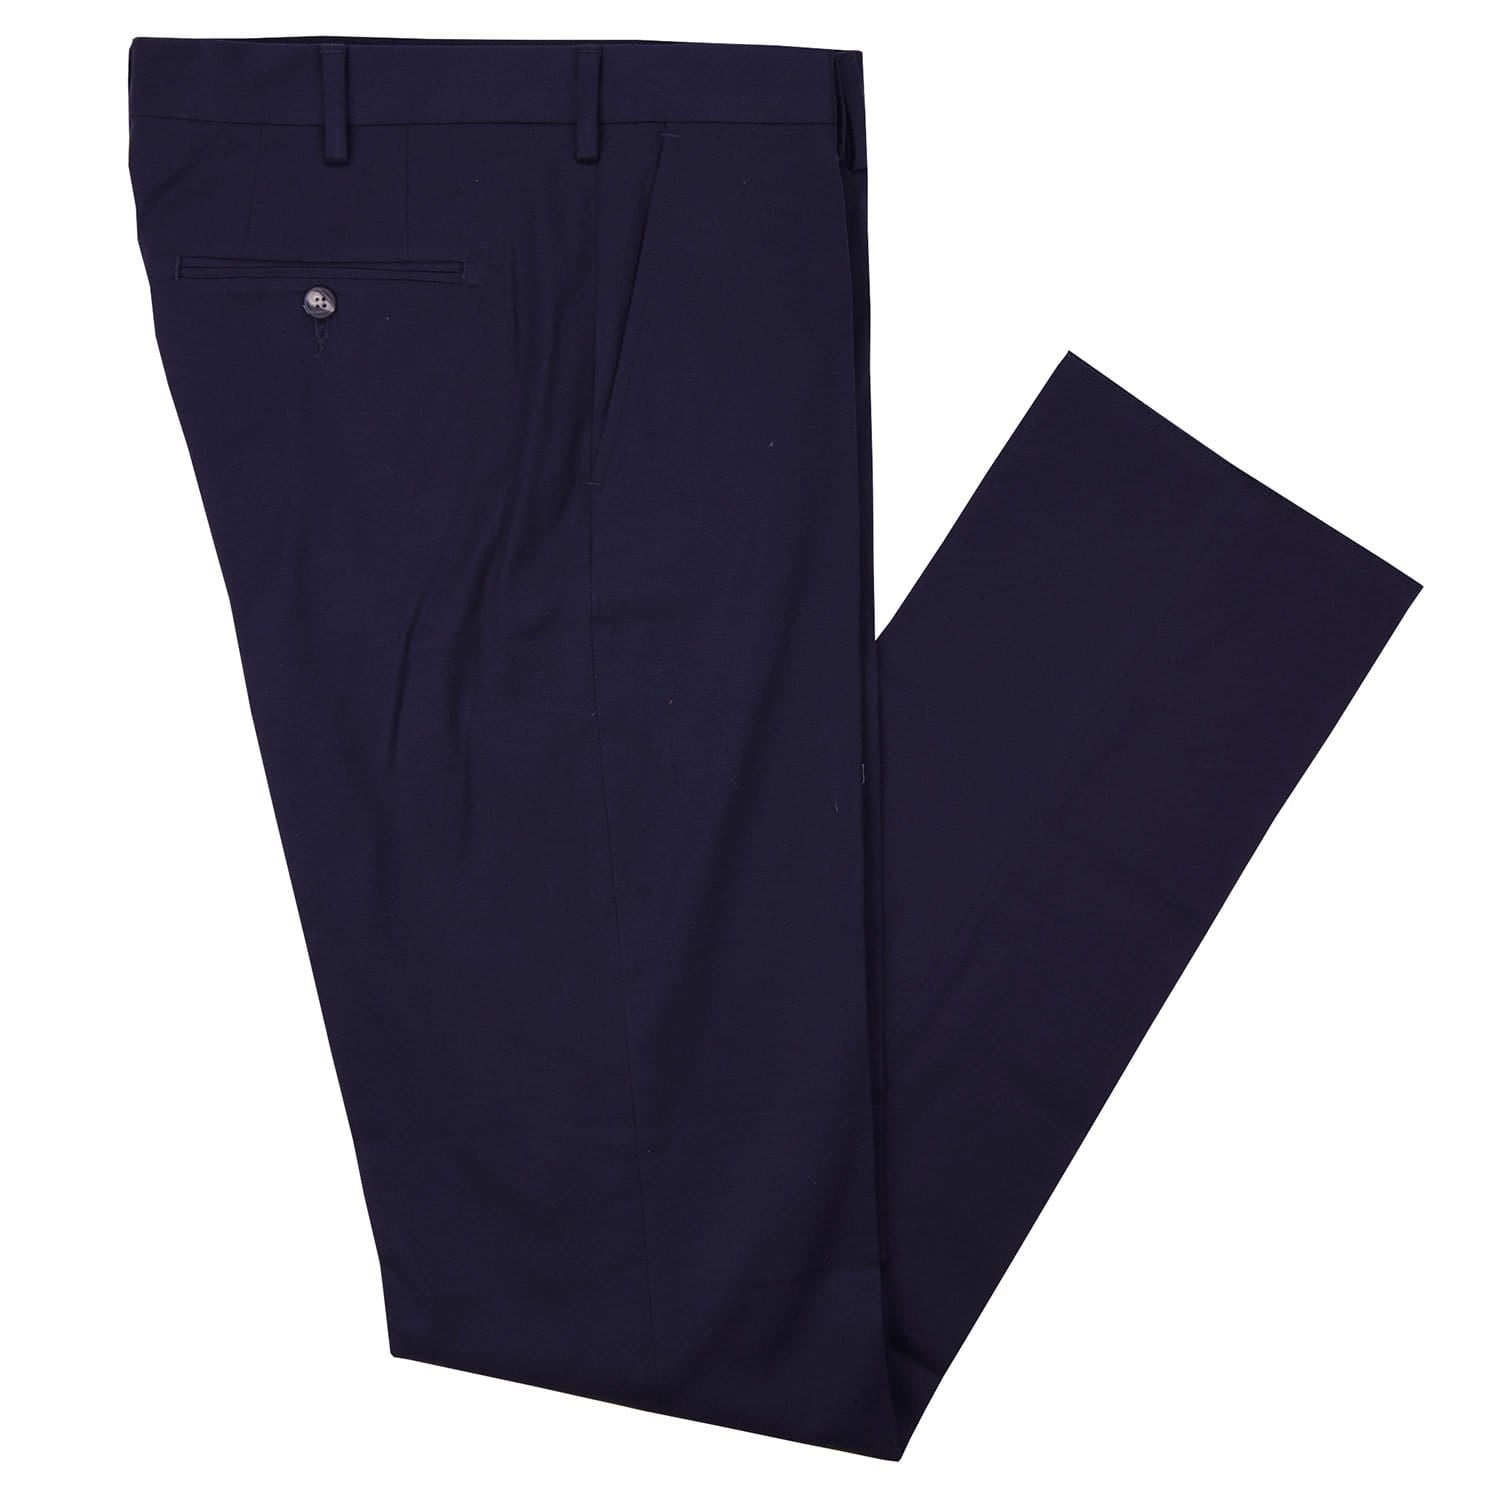 Aubrey Cotton Stretch Navy Poplin Pant - Haspel Clothing